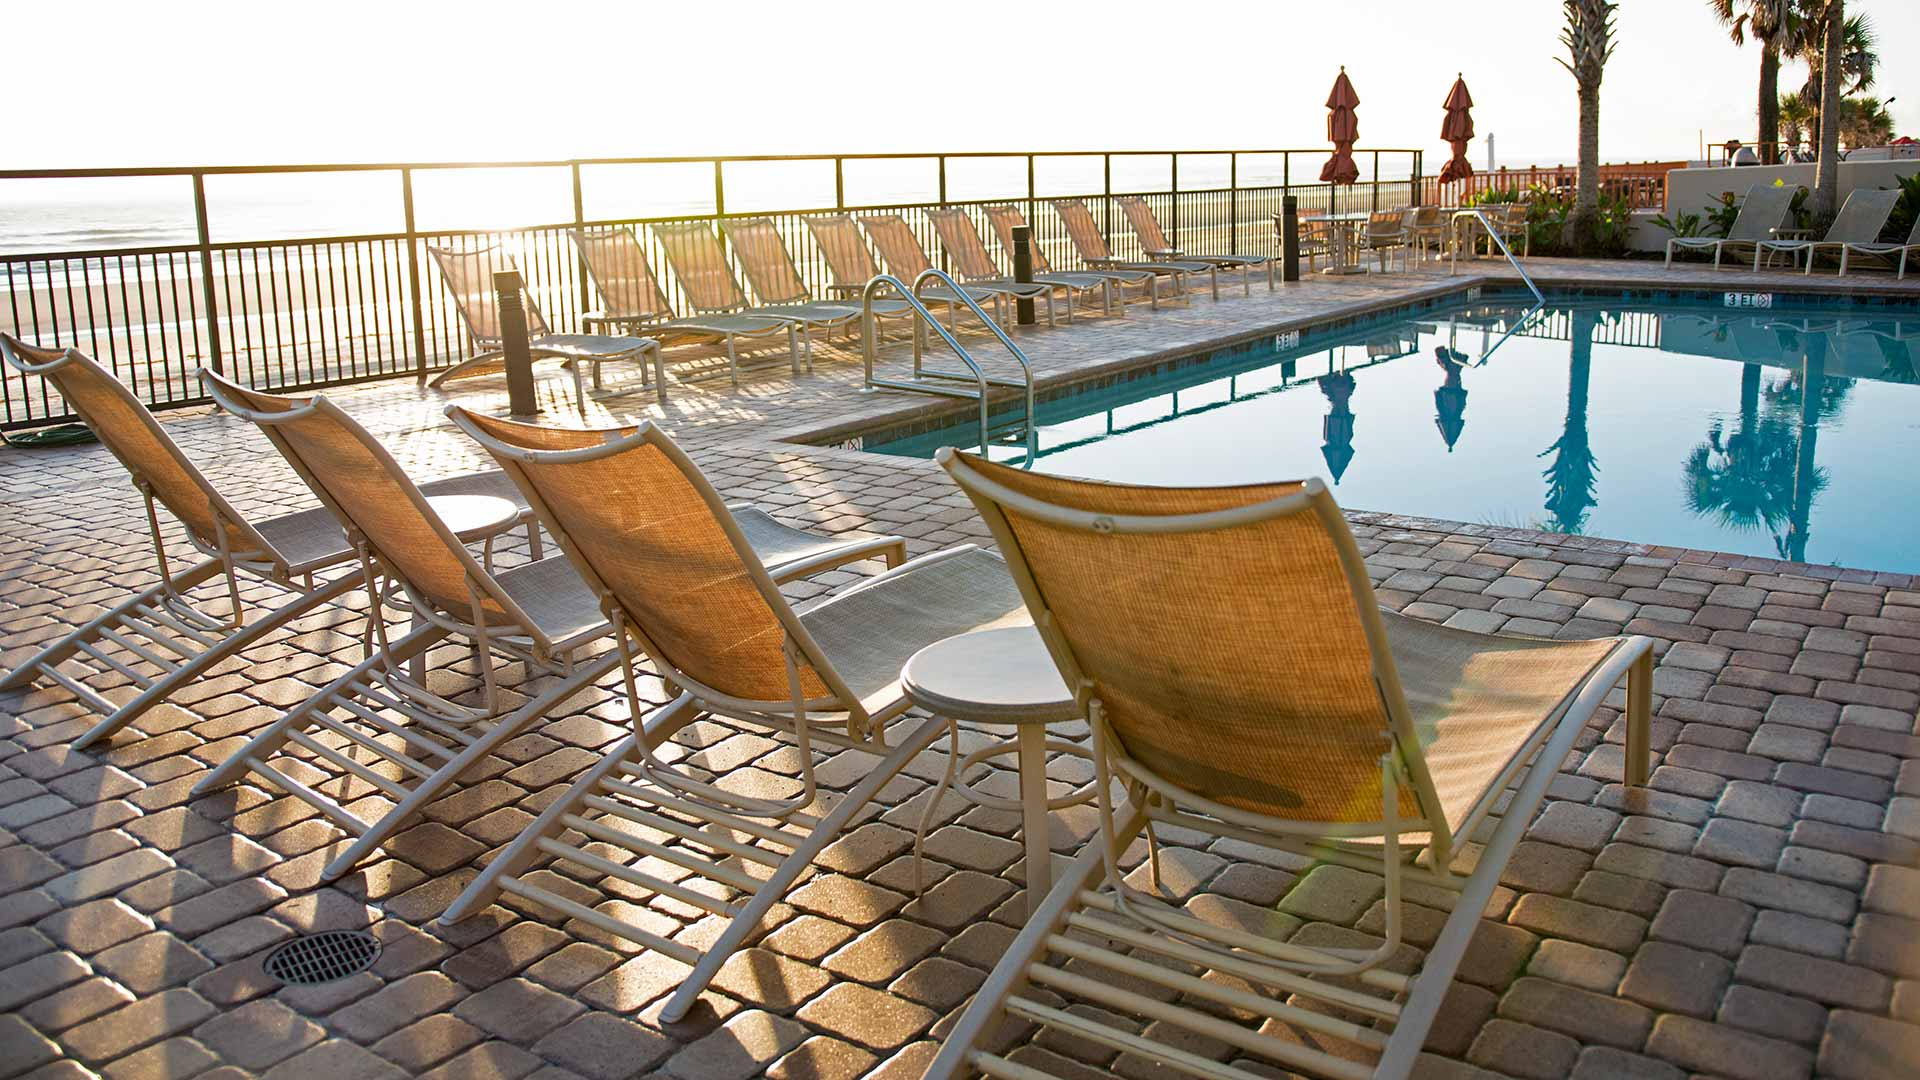 scenic view of pool deck area at sunrise